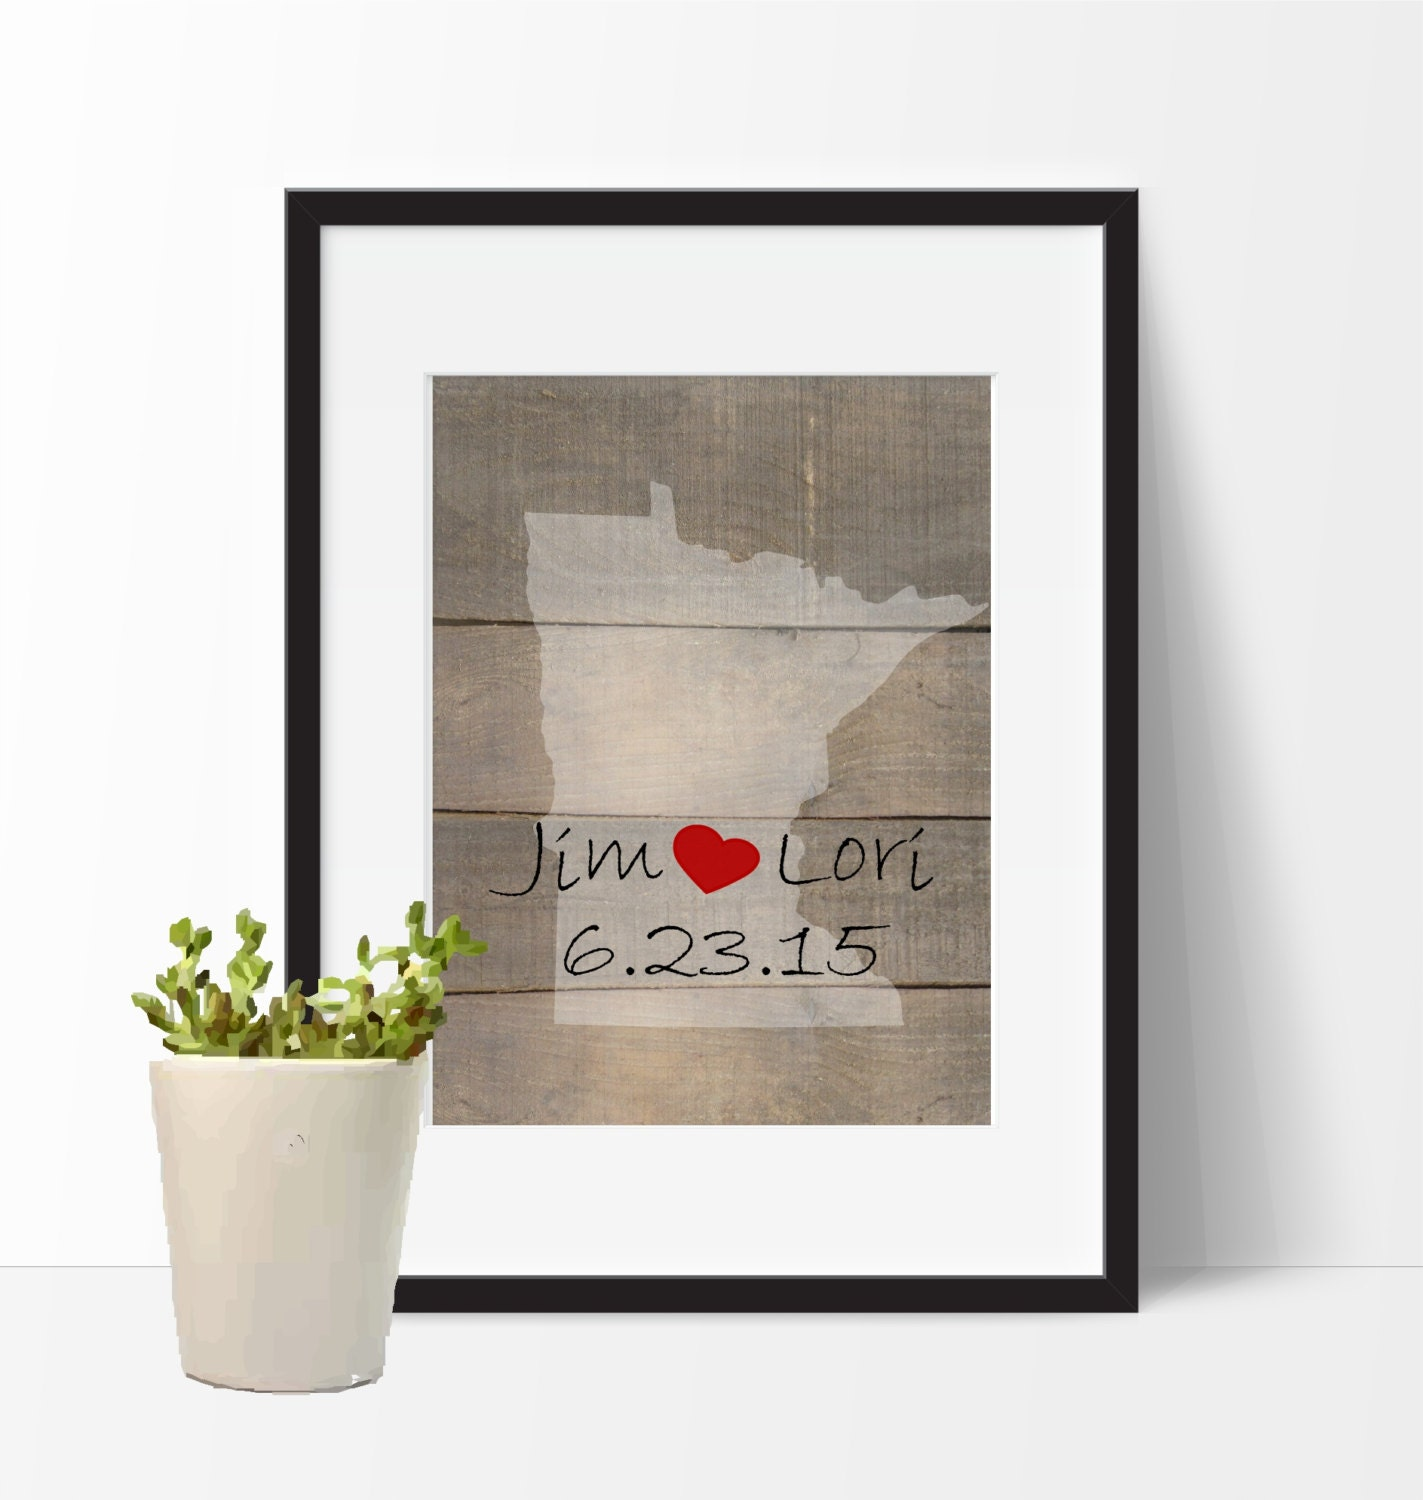 Personalized State Art Print Wedding Gift for Couple Love